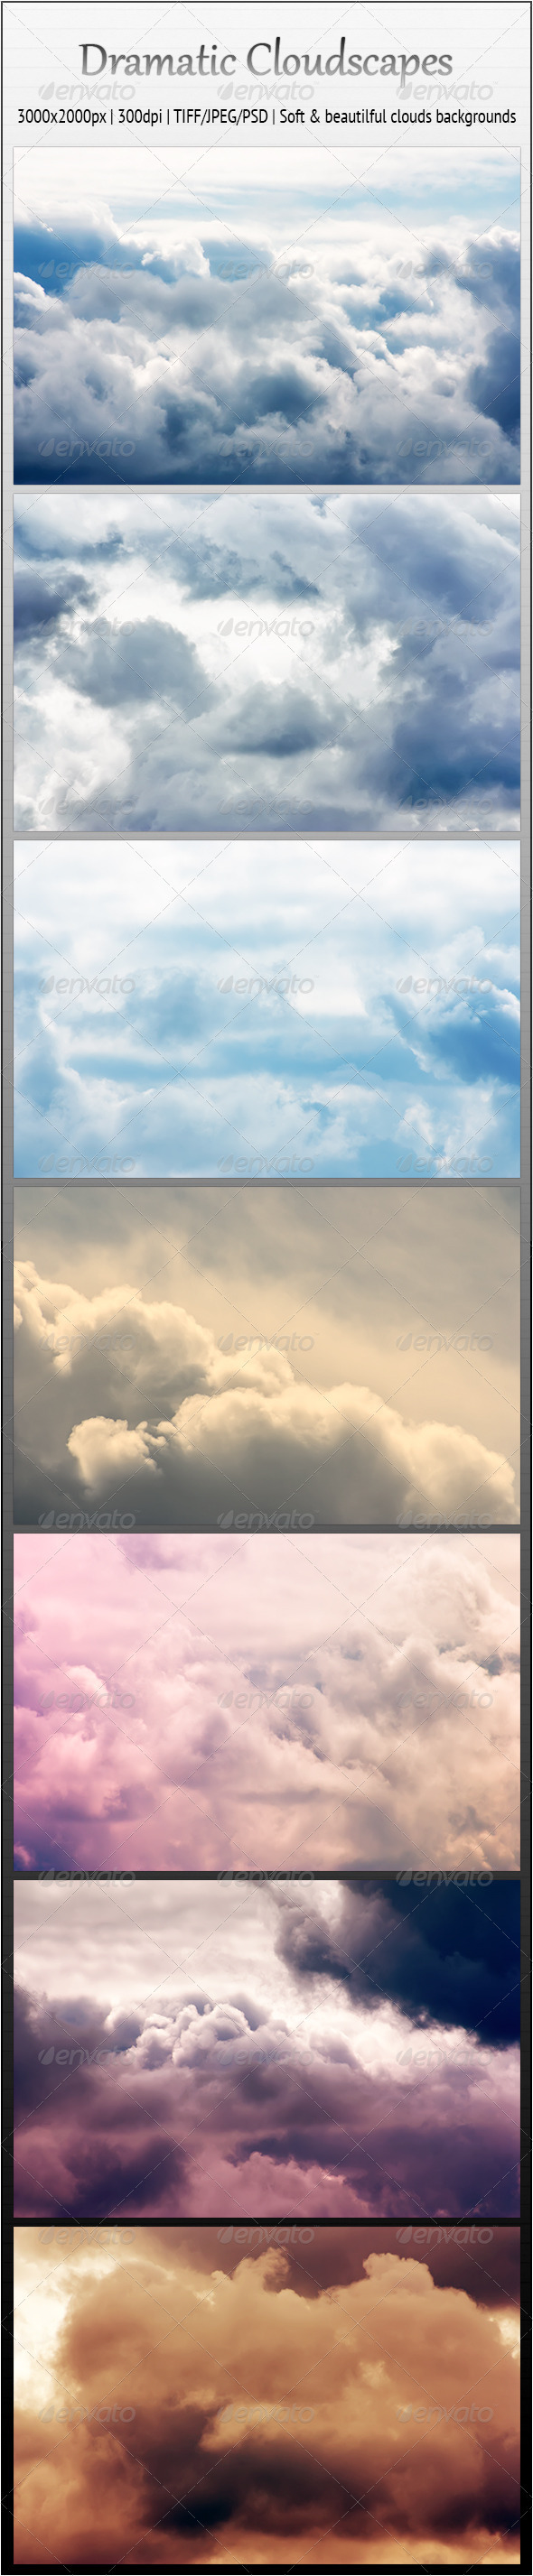 GraphicRiver Dramatic Cloudscapes 7 Soft Backgrounds 2519857